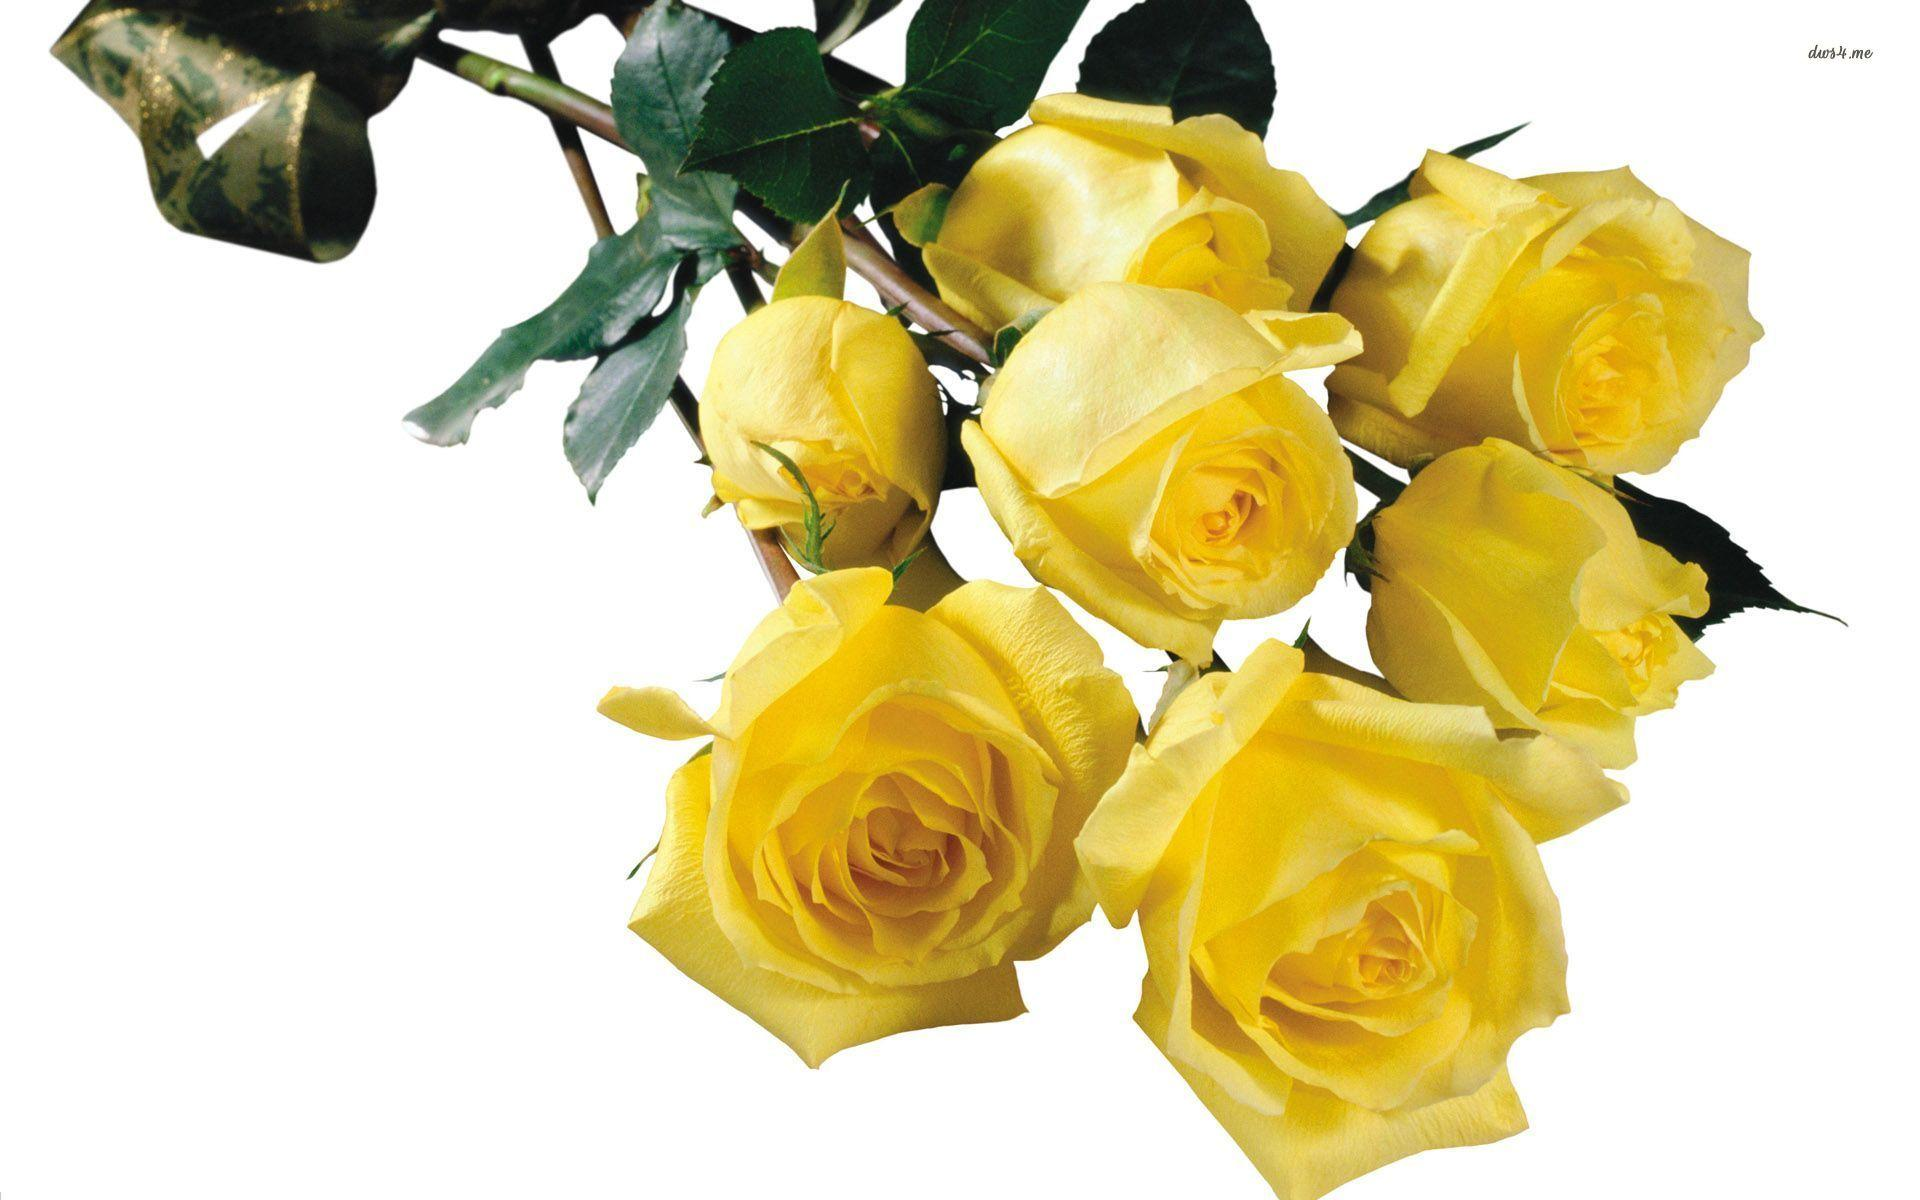 wallpaper of yellow roses - photo #18